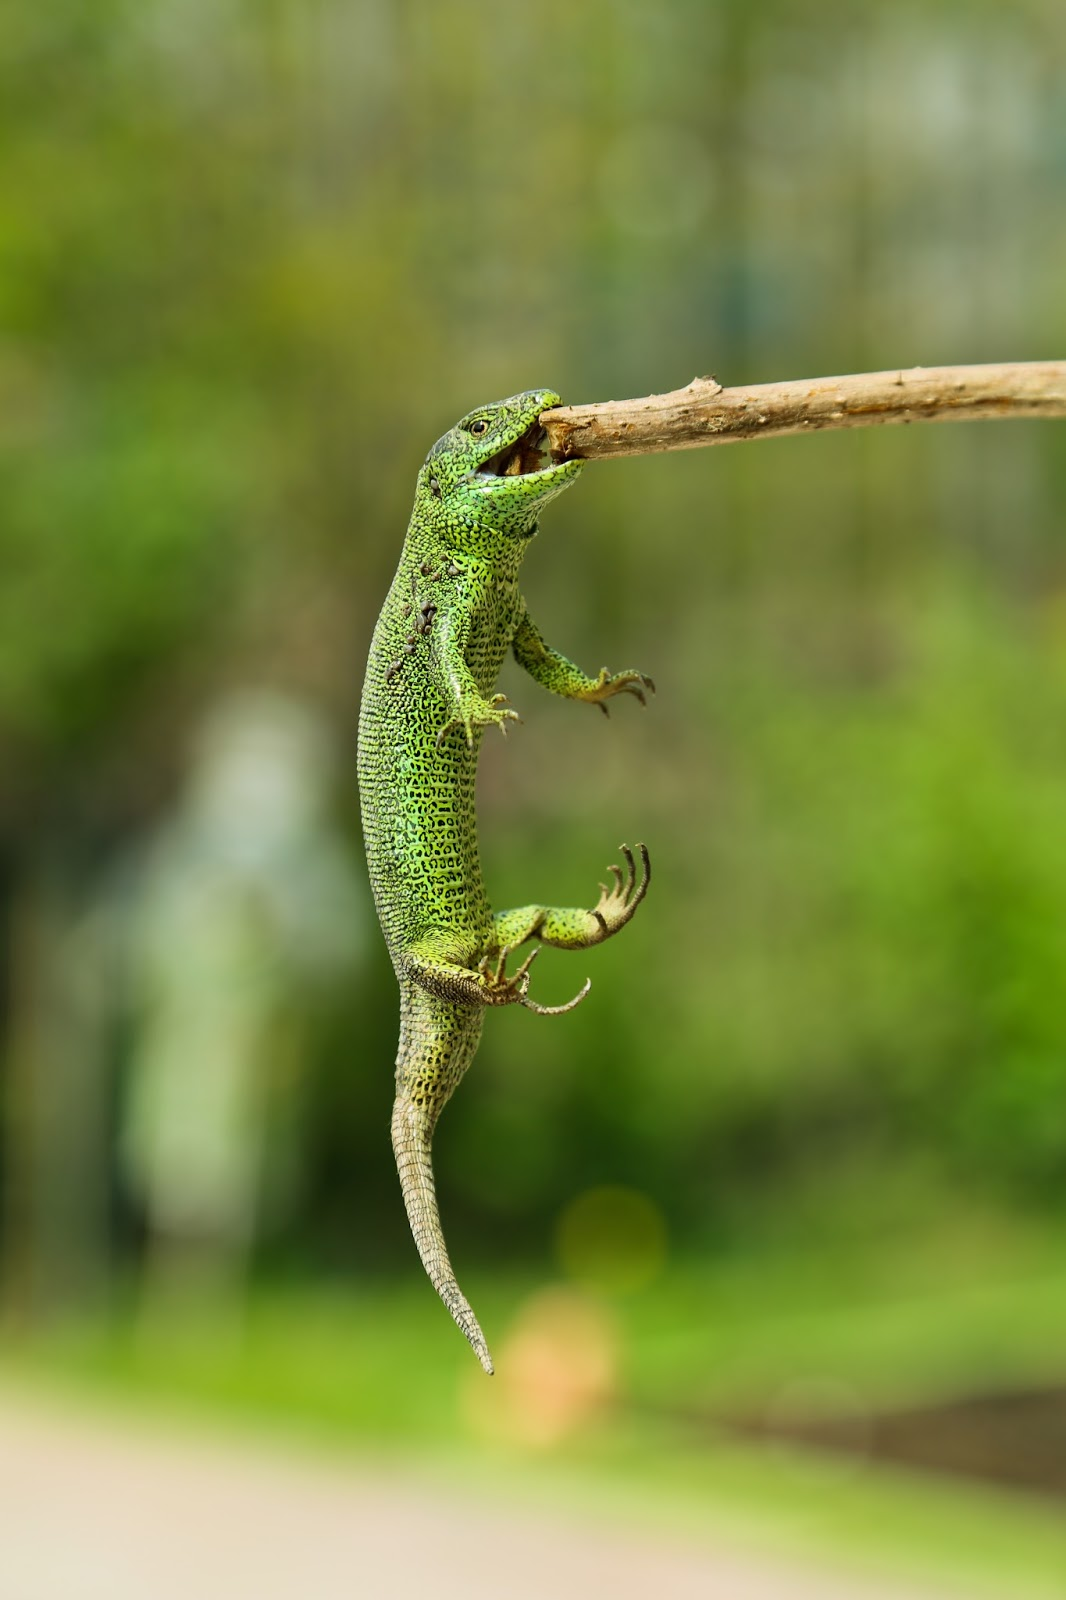 Amazing lizard hanging from stick.